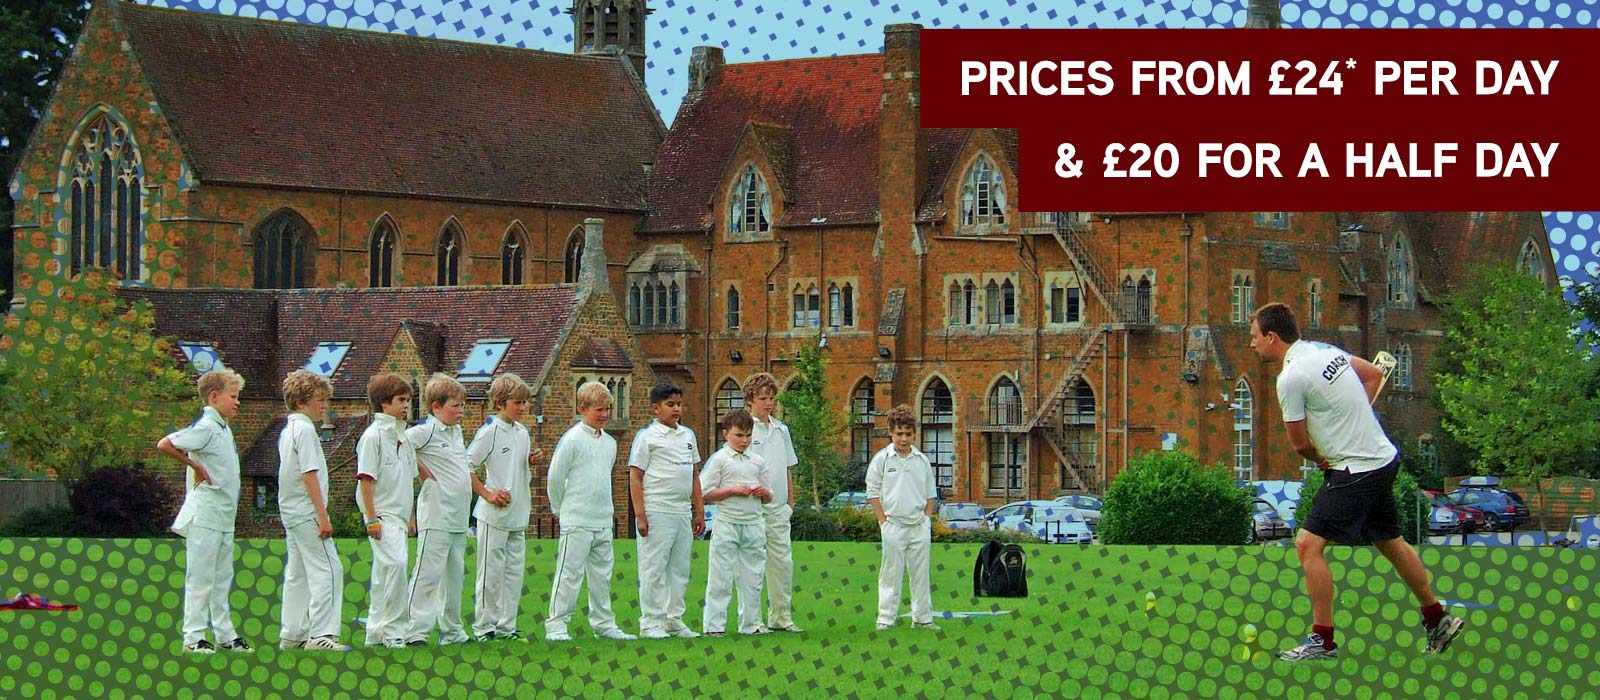 Prices from £24* per day & £20 for a half day